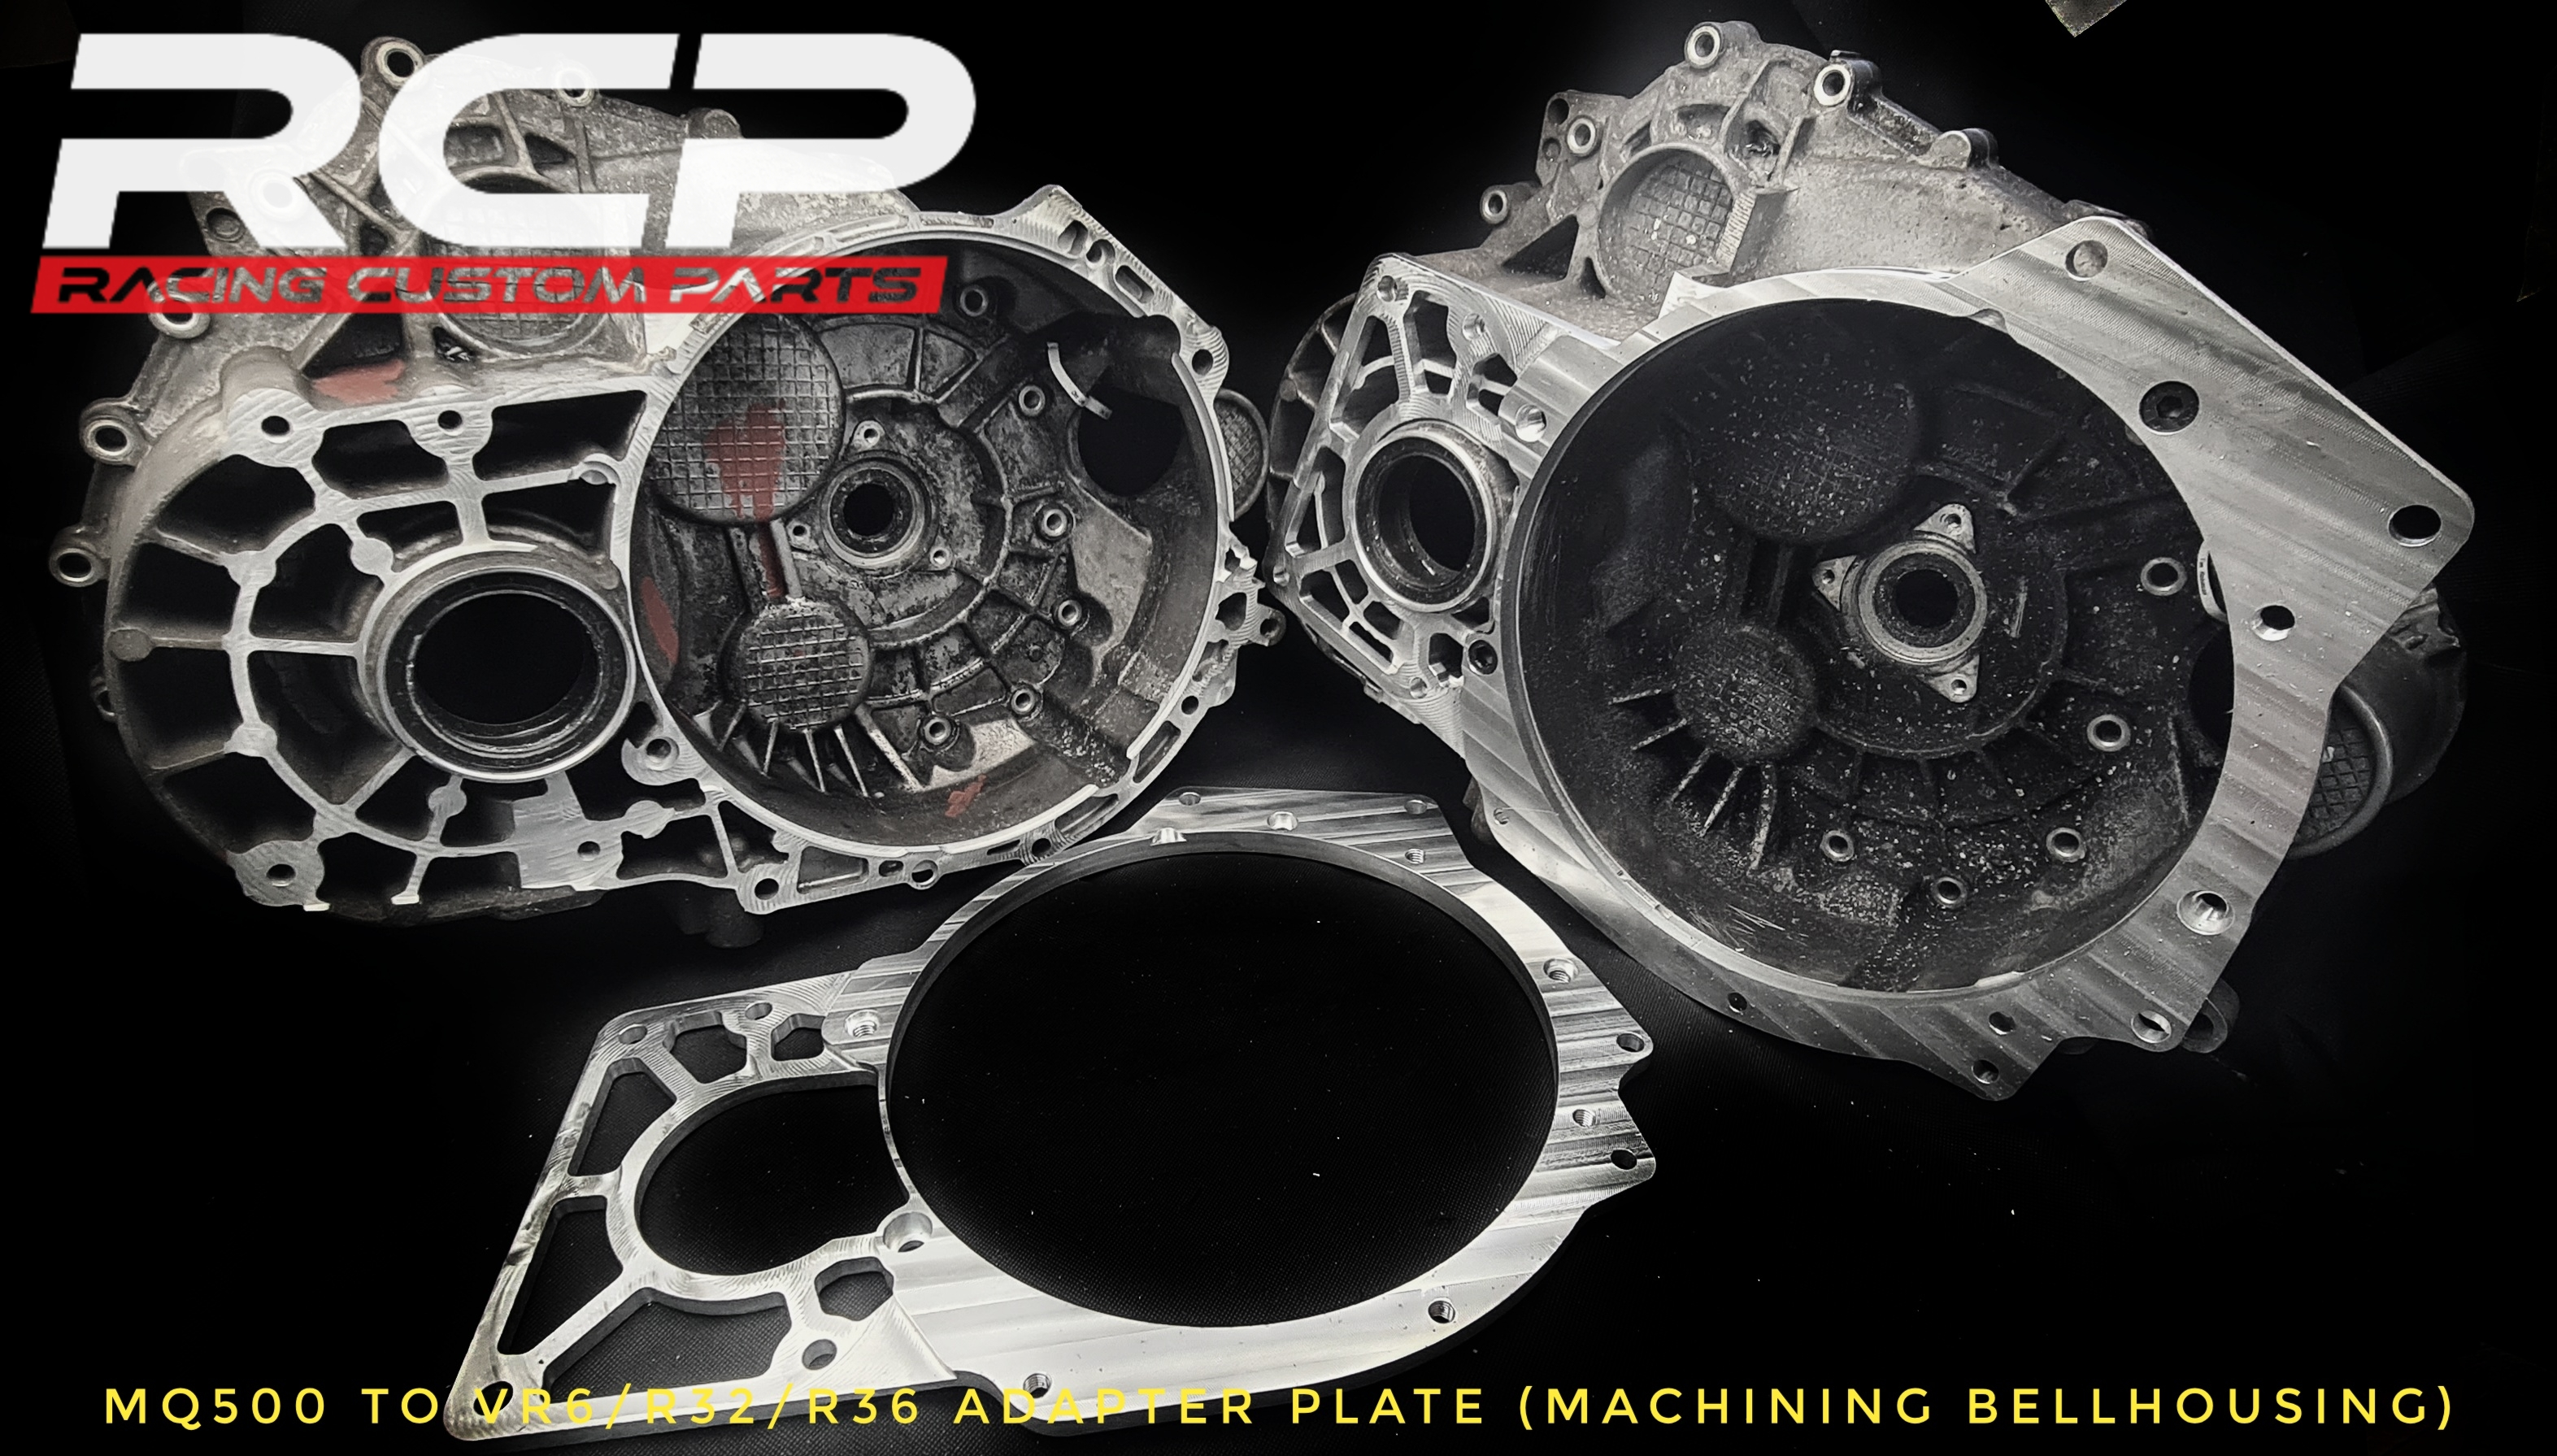 mq500 r32 adapter plate machining bellhousing strong gearbox turbo r36 vr6 rcp racing custom parts billet cnc